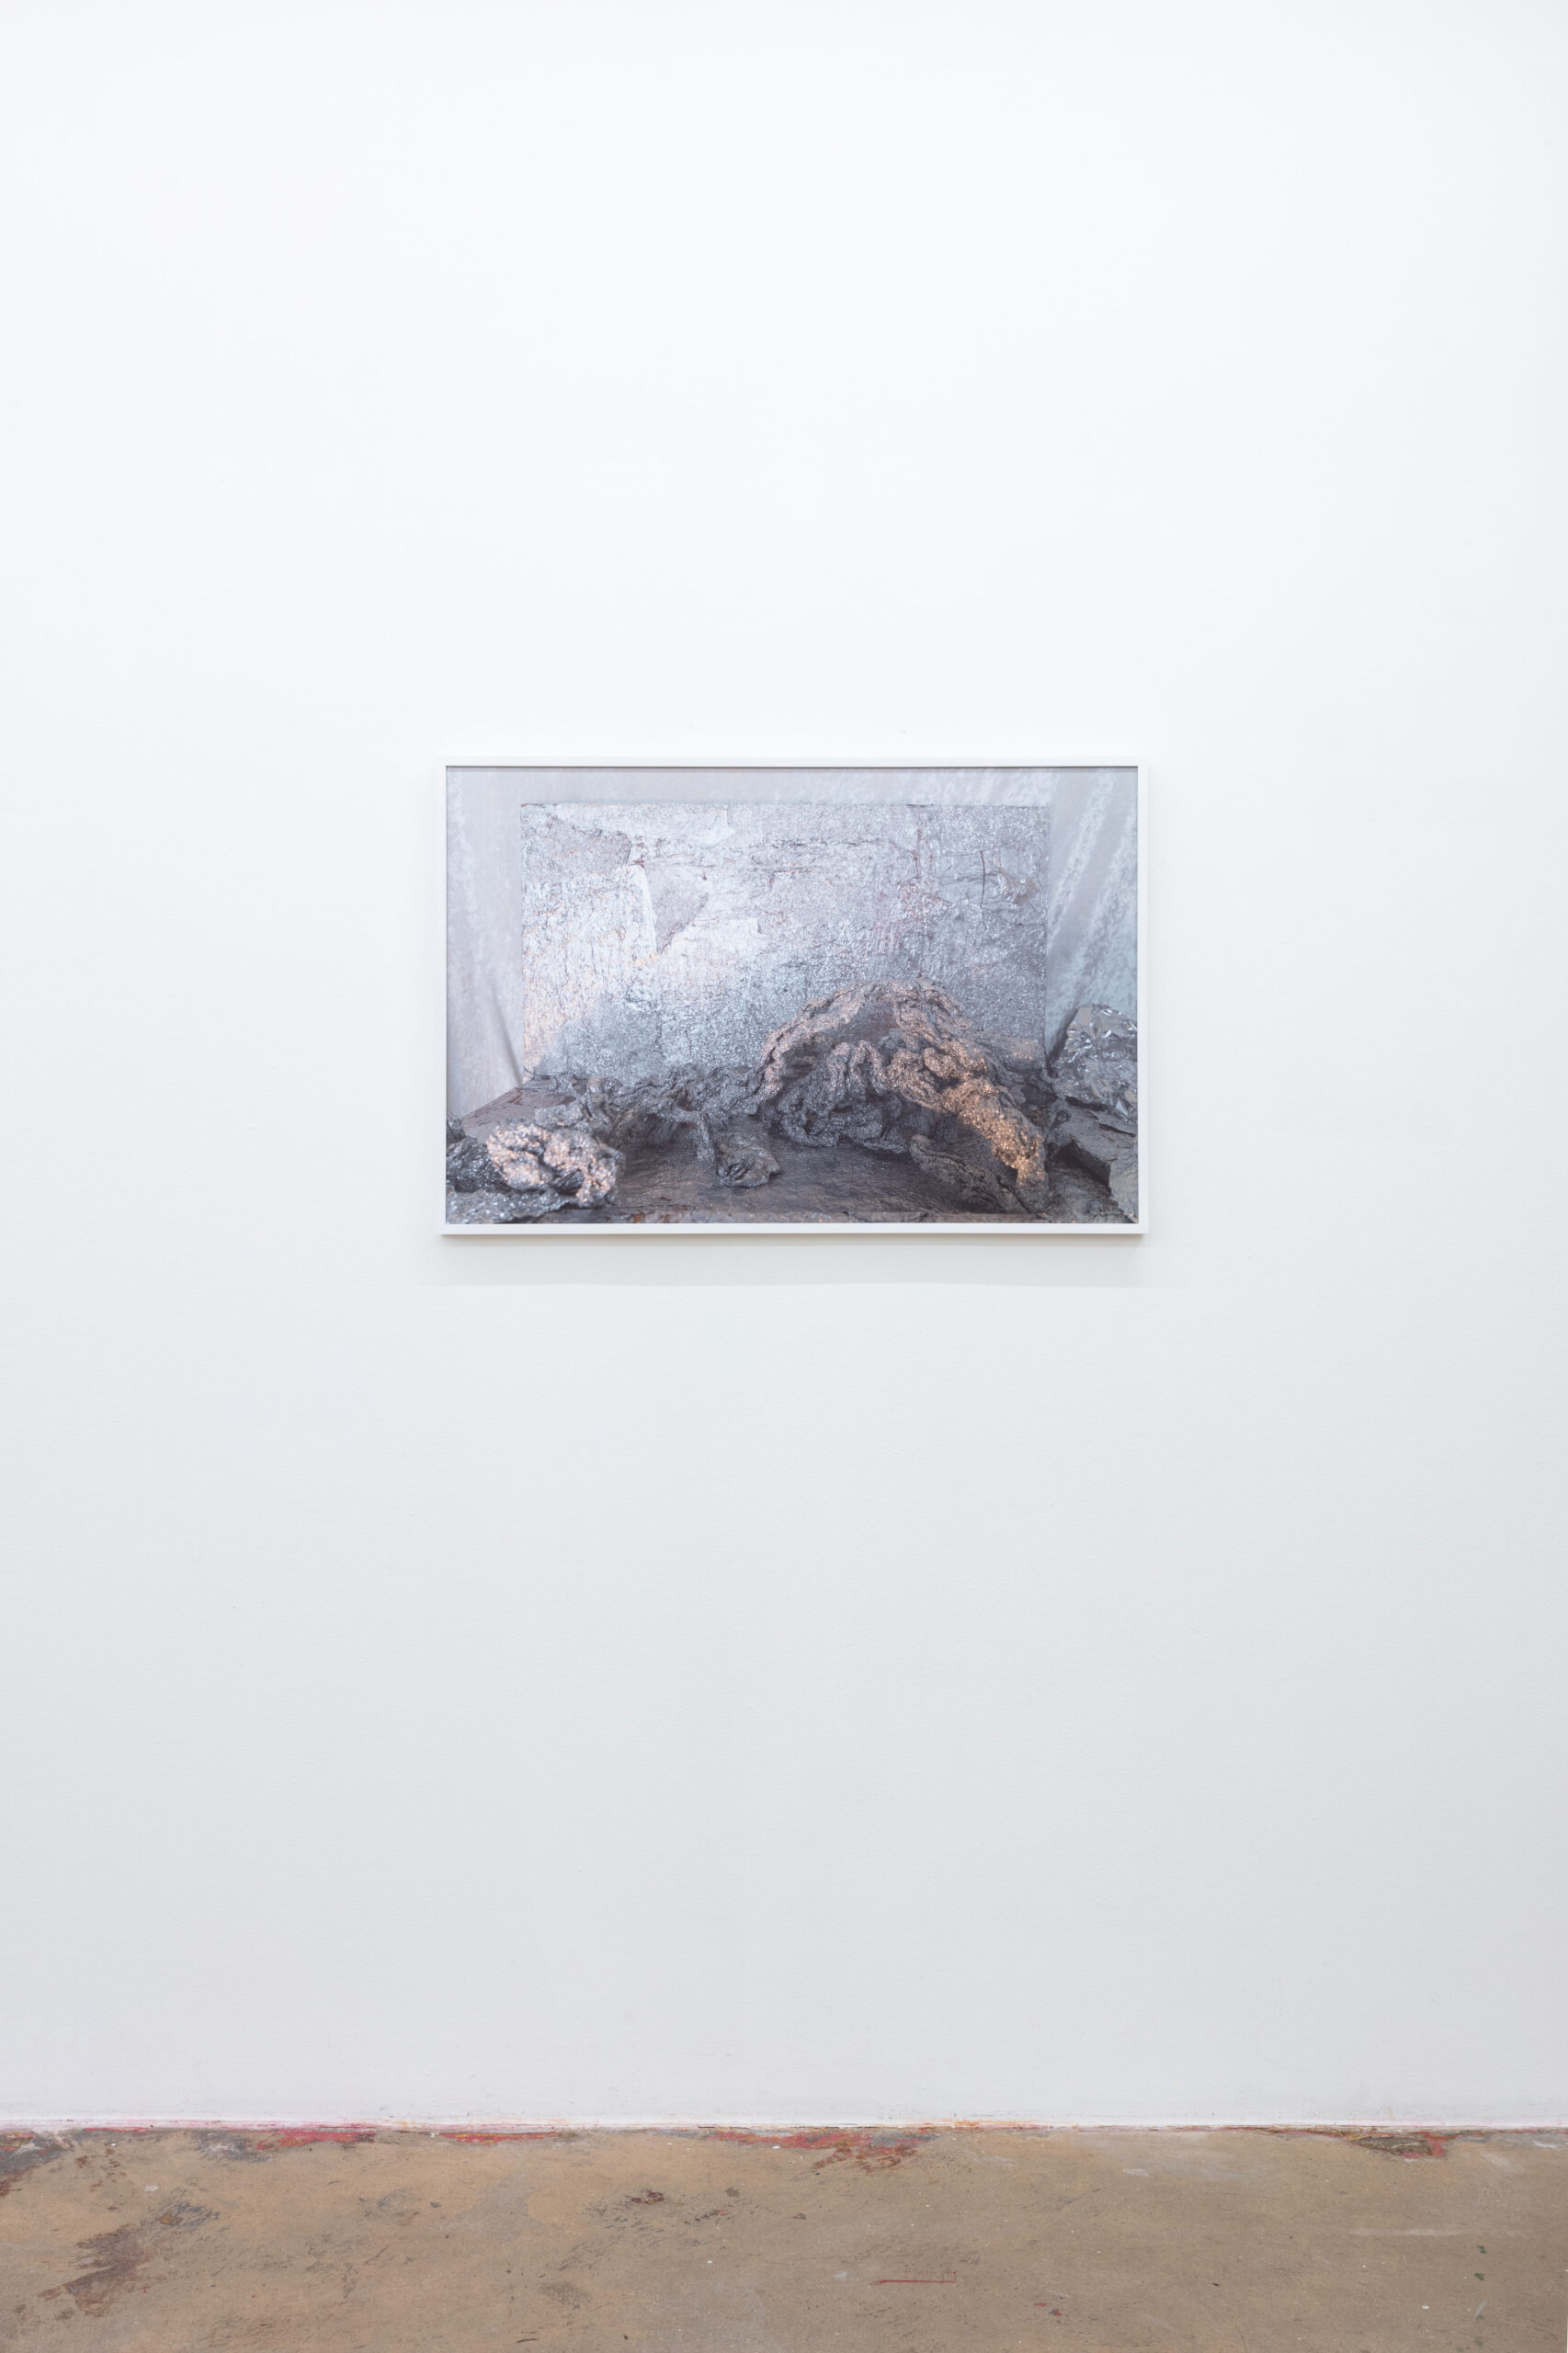 Anna Betbeze, Stage, 2021, framed archival print, 24 x 36 in. Ed. 2